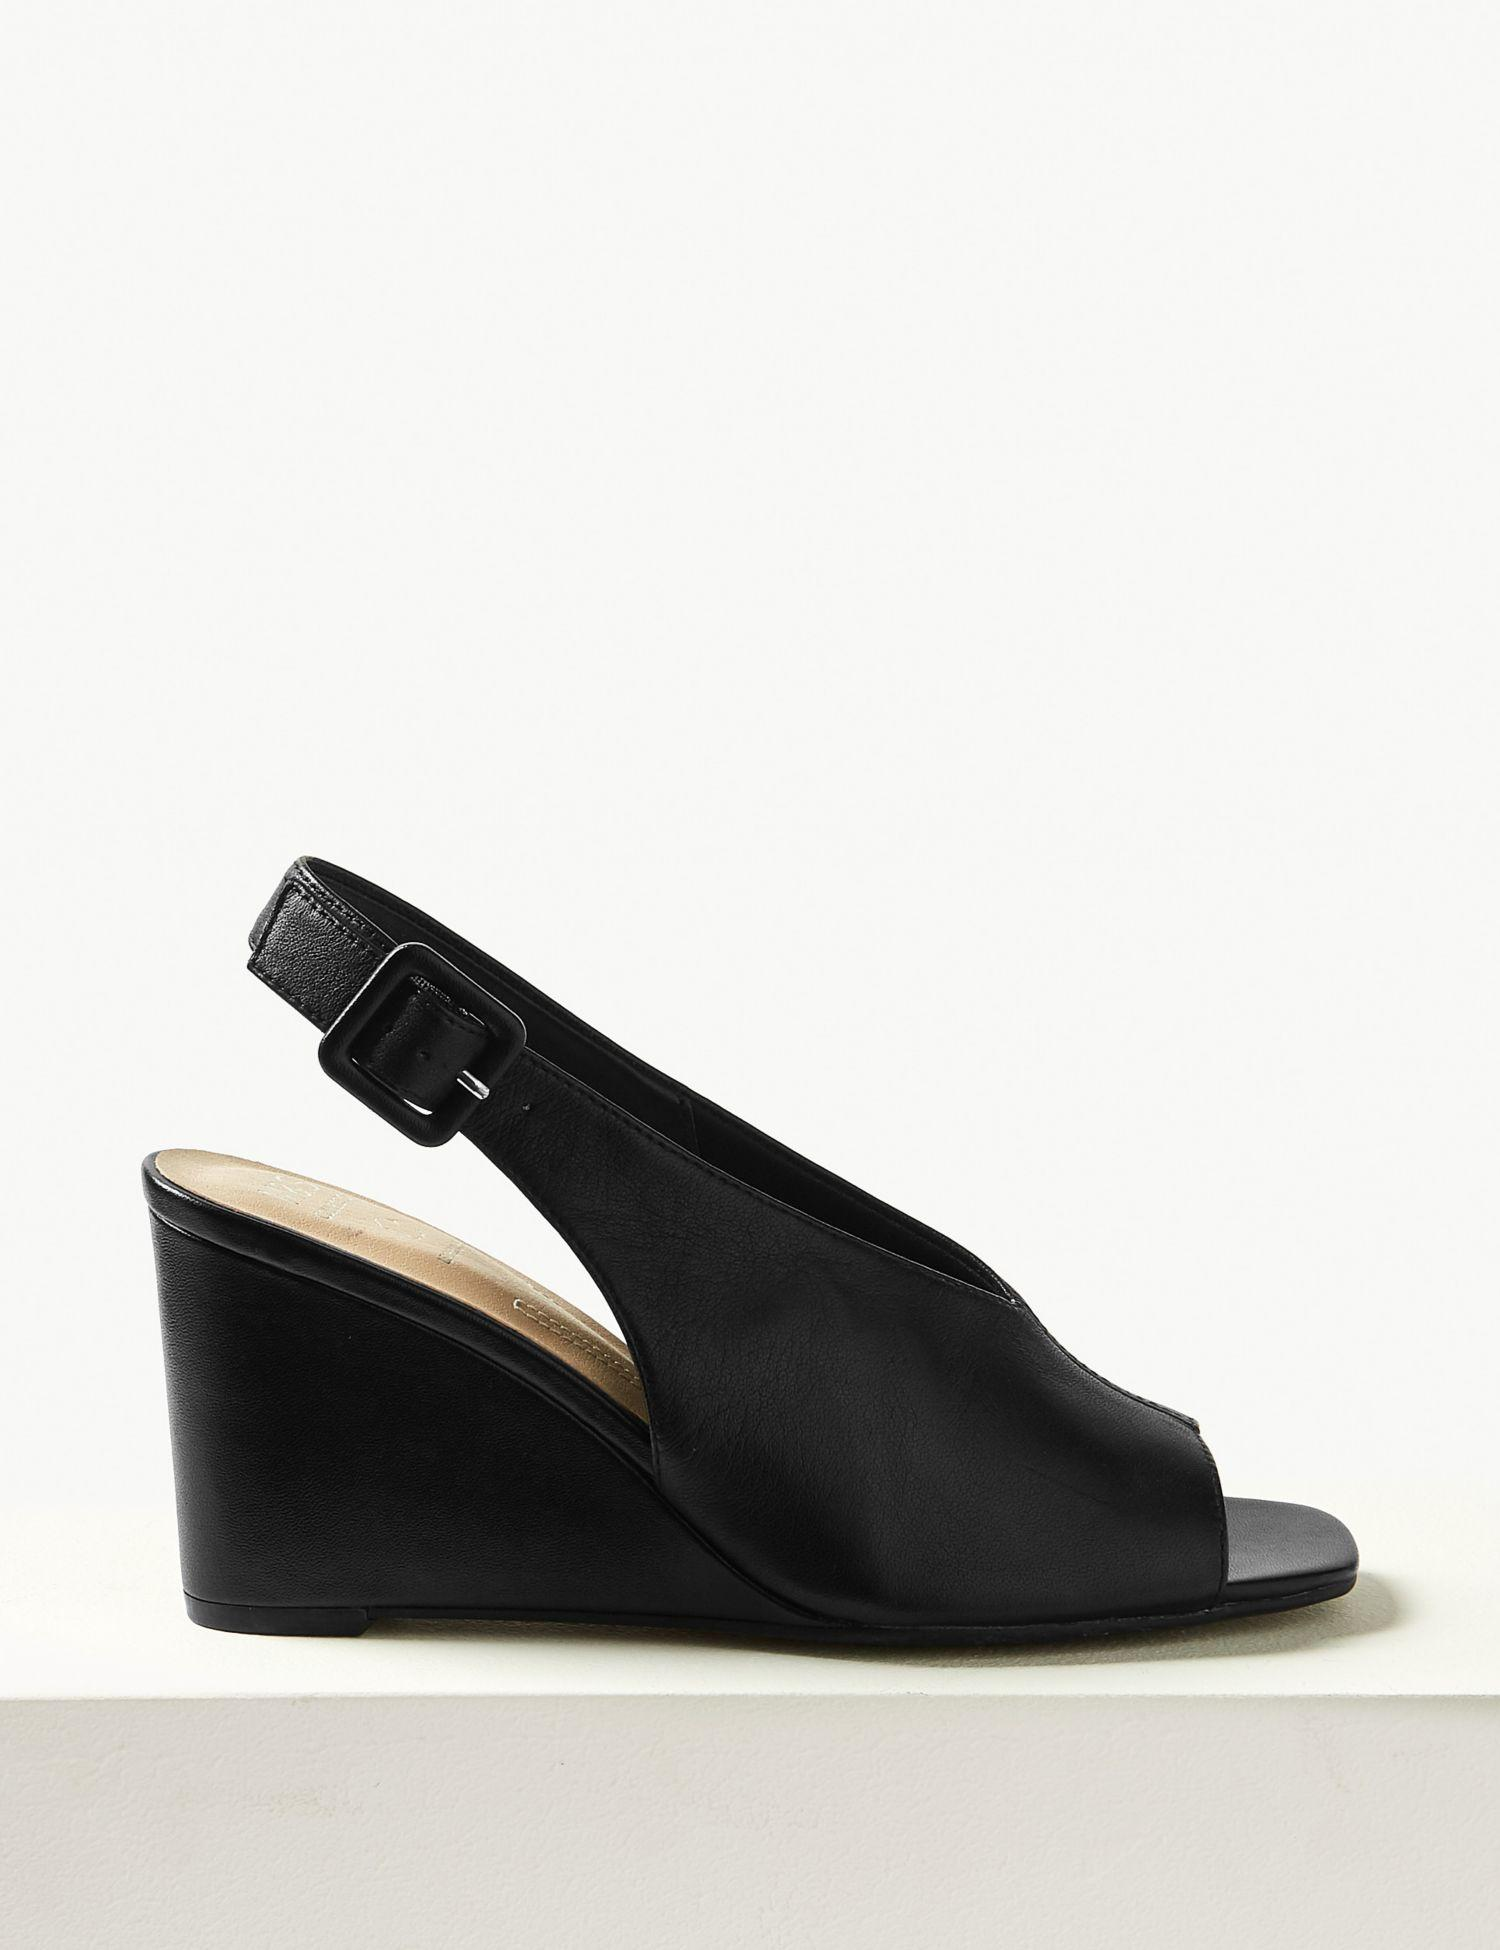 d43f489aa8c Marks & Spencer Leather Wedge Heel Slingback Sandals in Black - Lyst